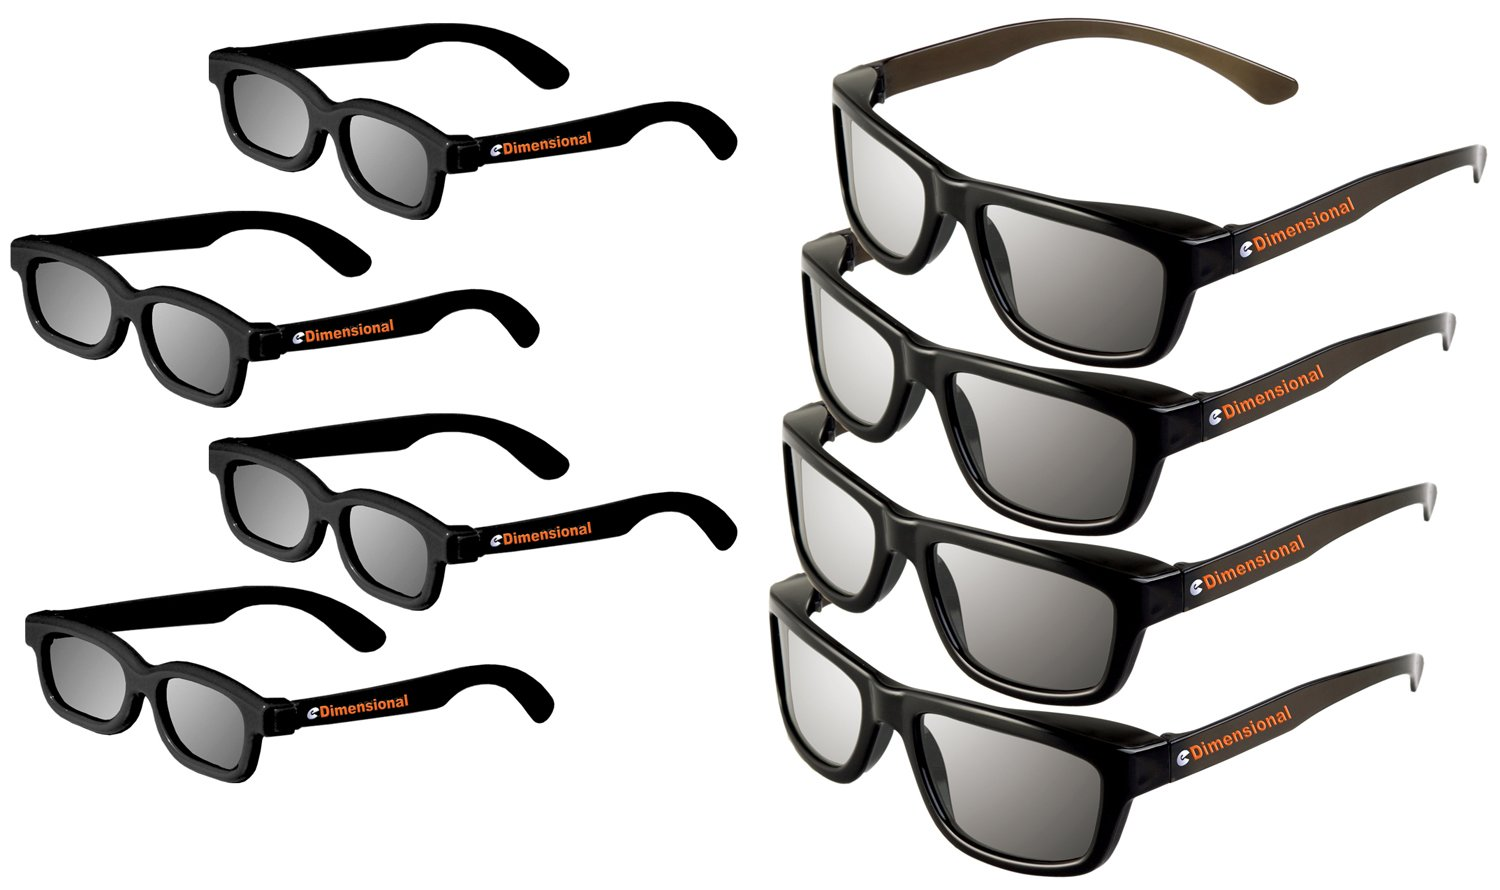 Passive 3D Glasses Deluxe Family Pack For Vizio 3D TVs Genuine eDimensional Sealed Kids and Adult Passive Theater Circular 3D Glasses!